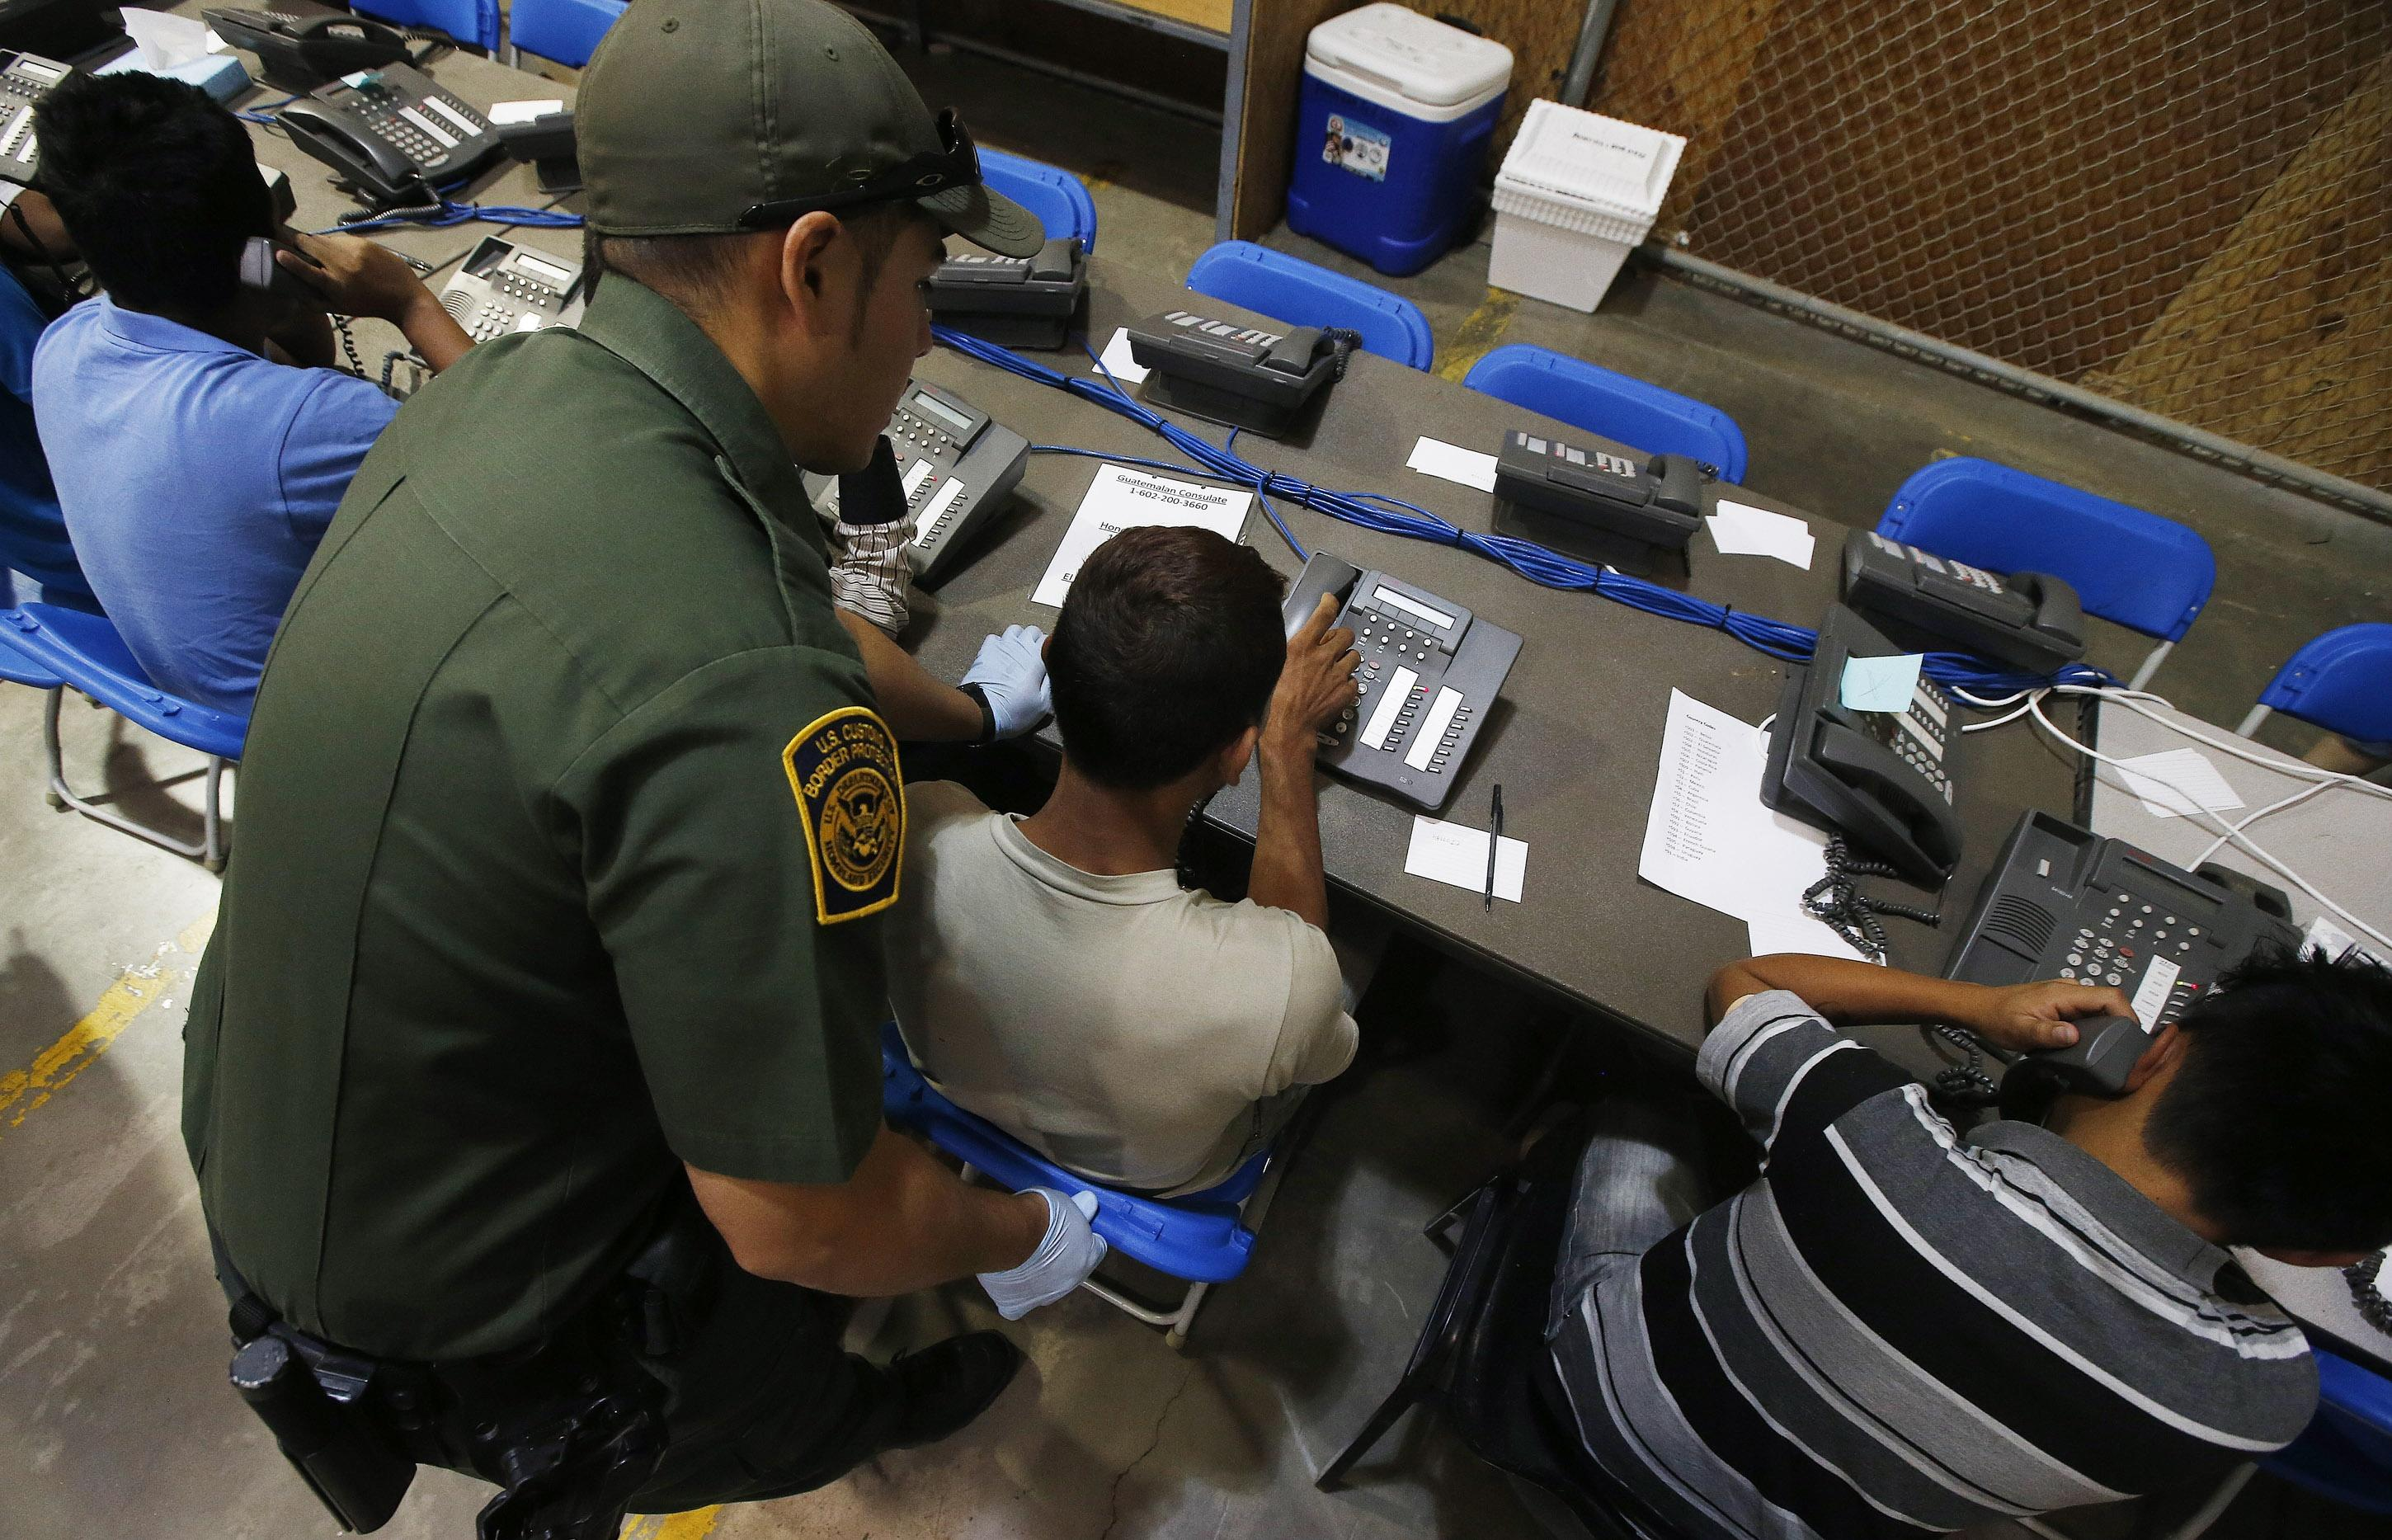 Obama may be misreading 2008 deportation law, report shows